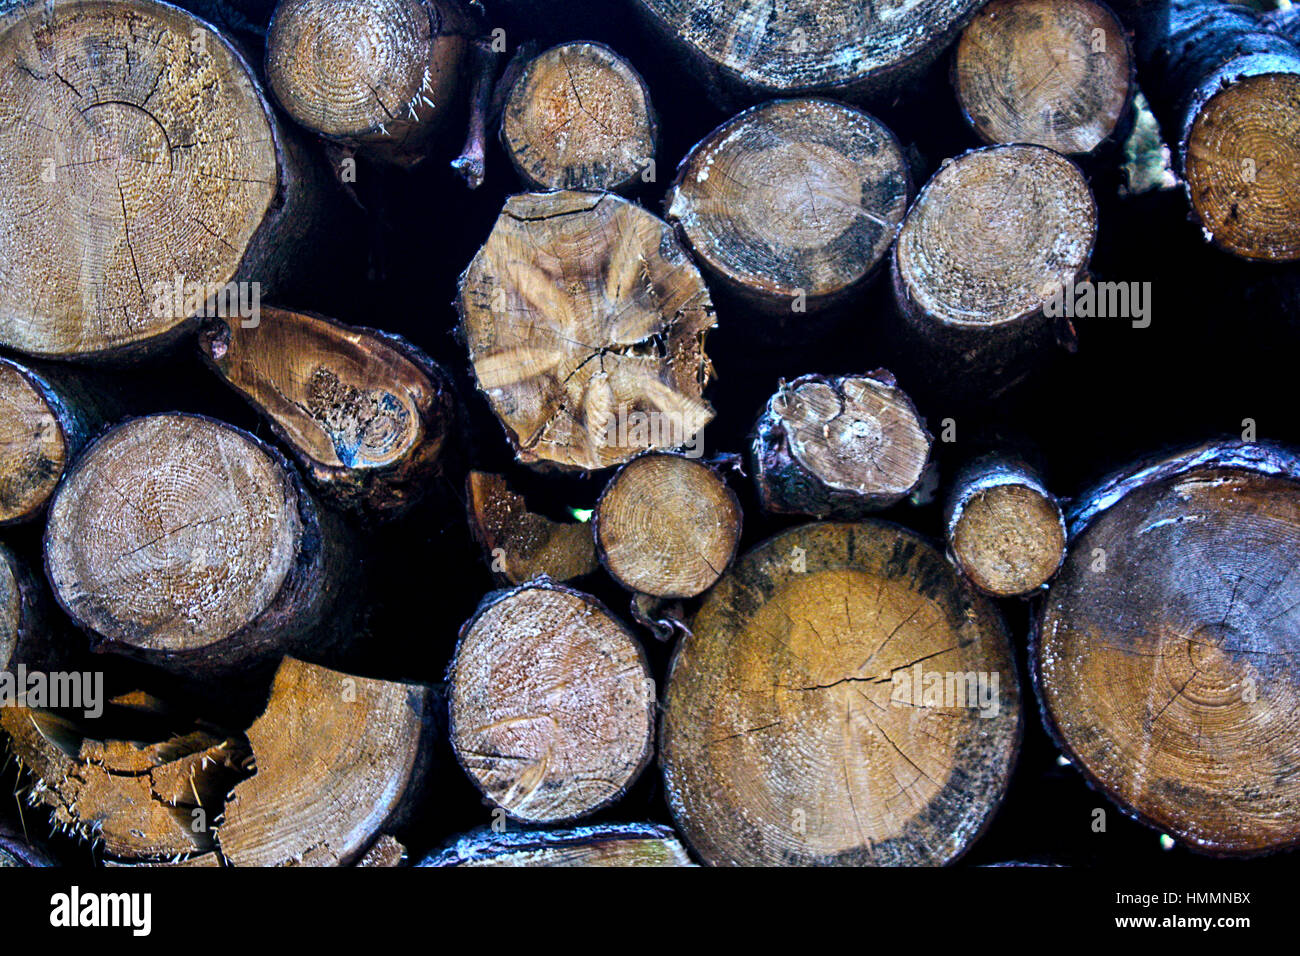 Lots of Logs - Stock Image